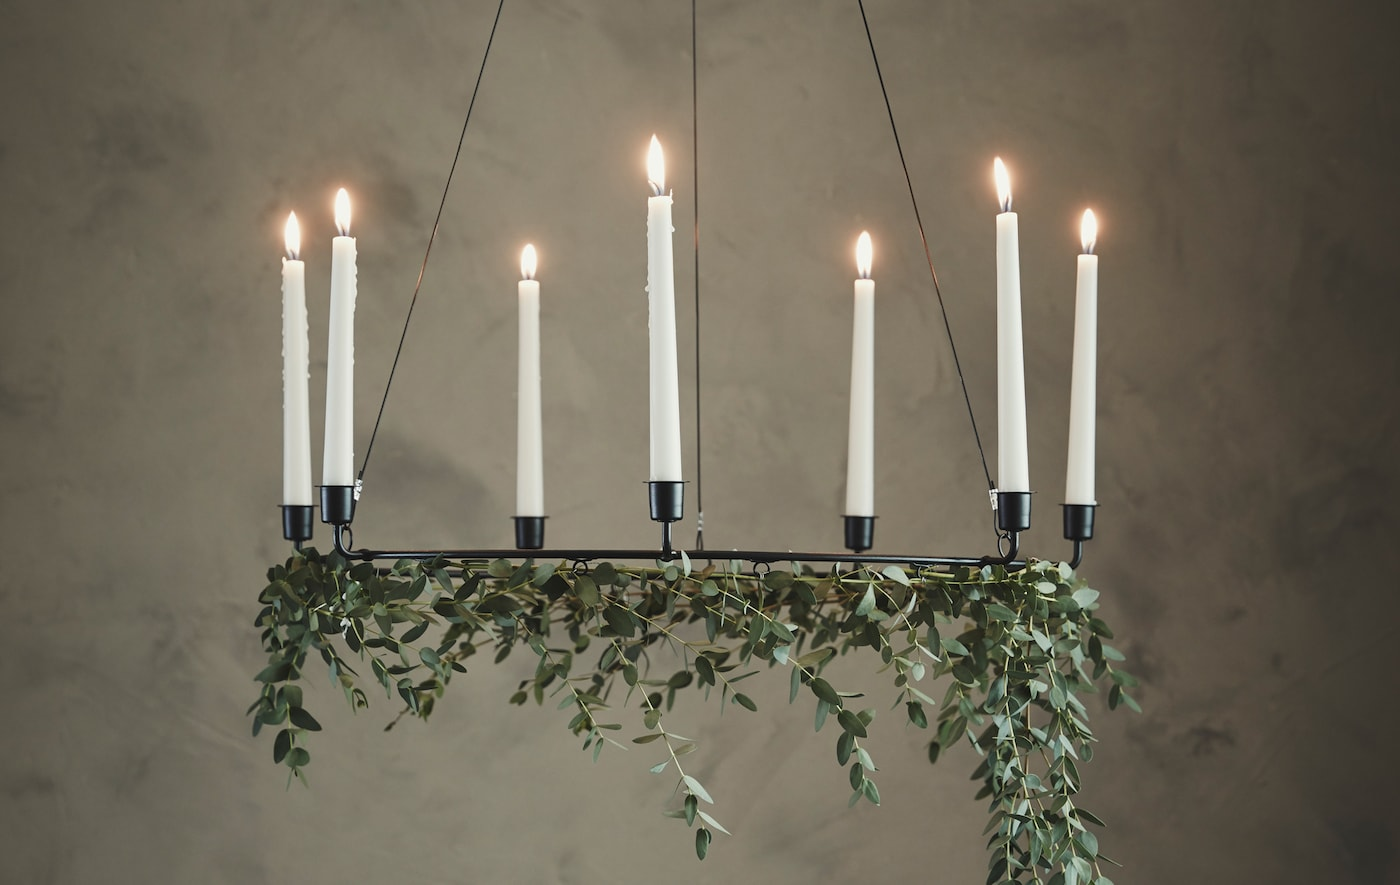 A chandelier with some fresh-cuts flowers hanging beneath the candles.